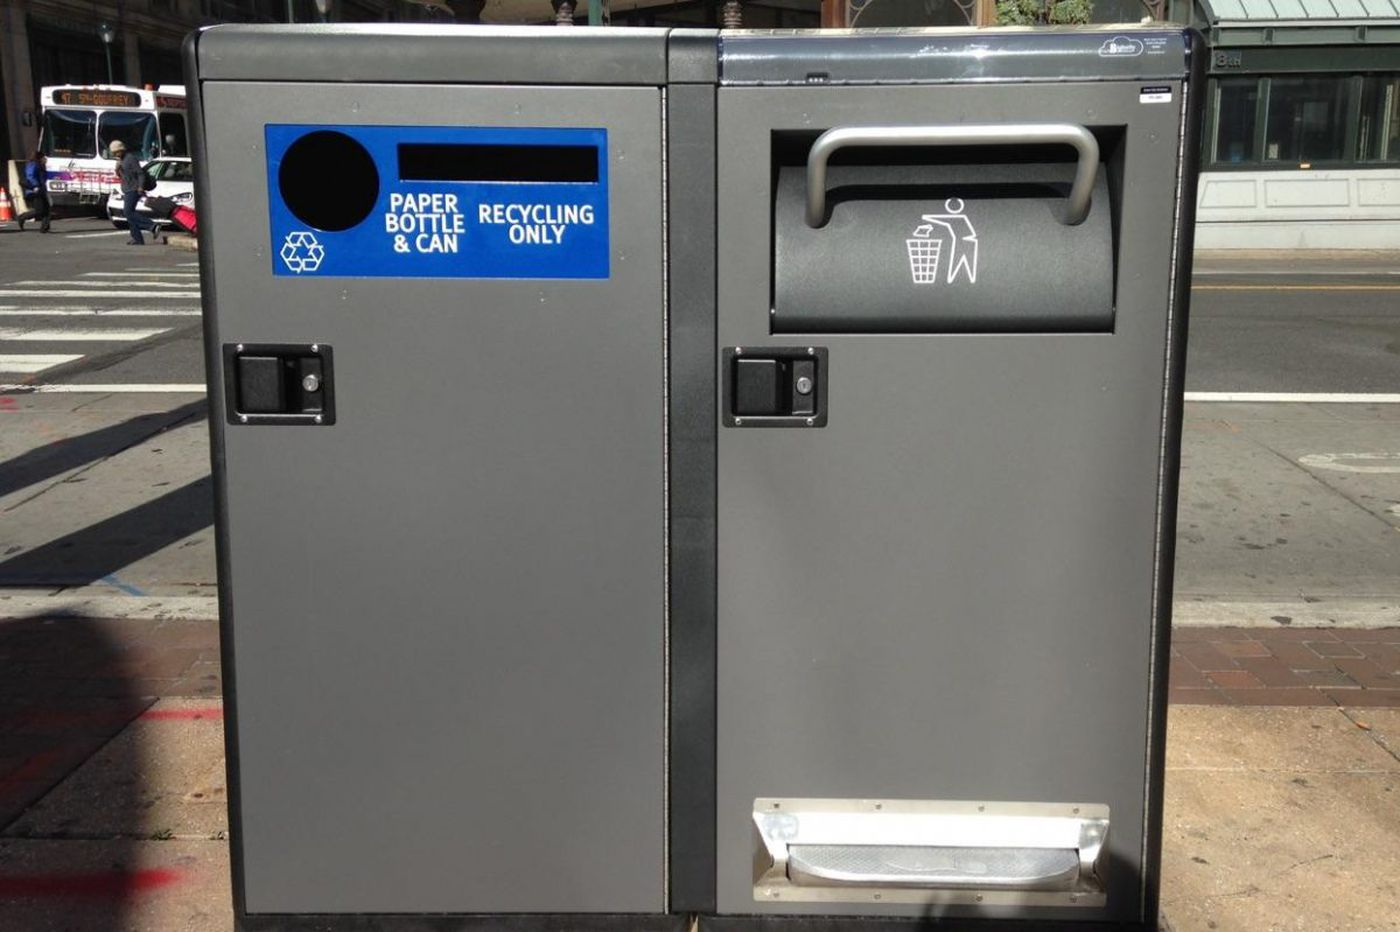 Philly getting new, germaphobe-friendly street trash compactors